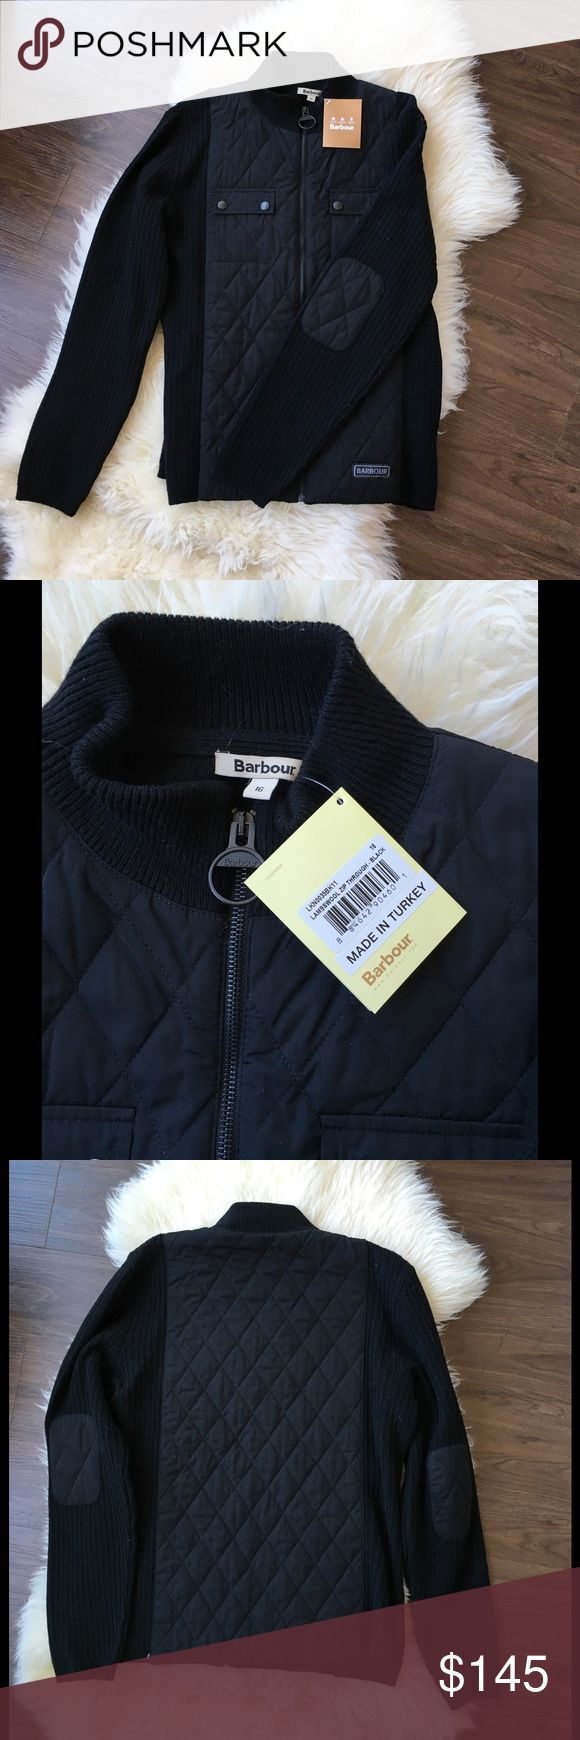 Barbour Jacket Wool and quilted zip up Barbour, two pockets on front. NWT. Barbour Jackets & Coats